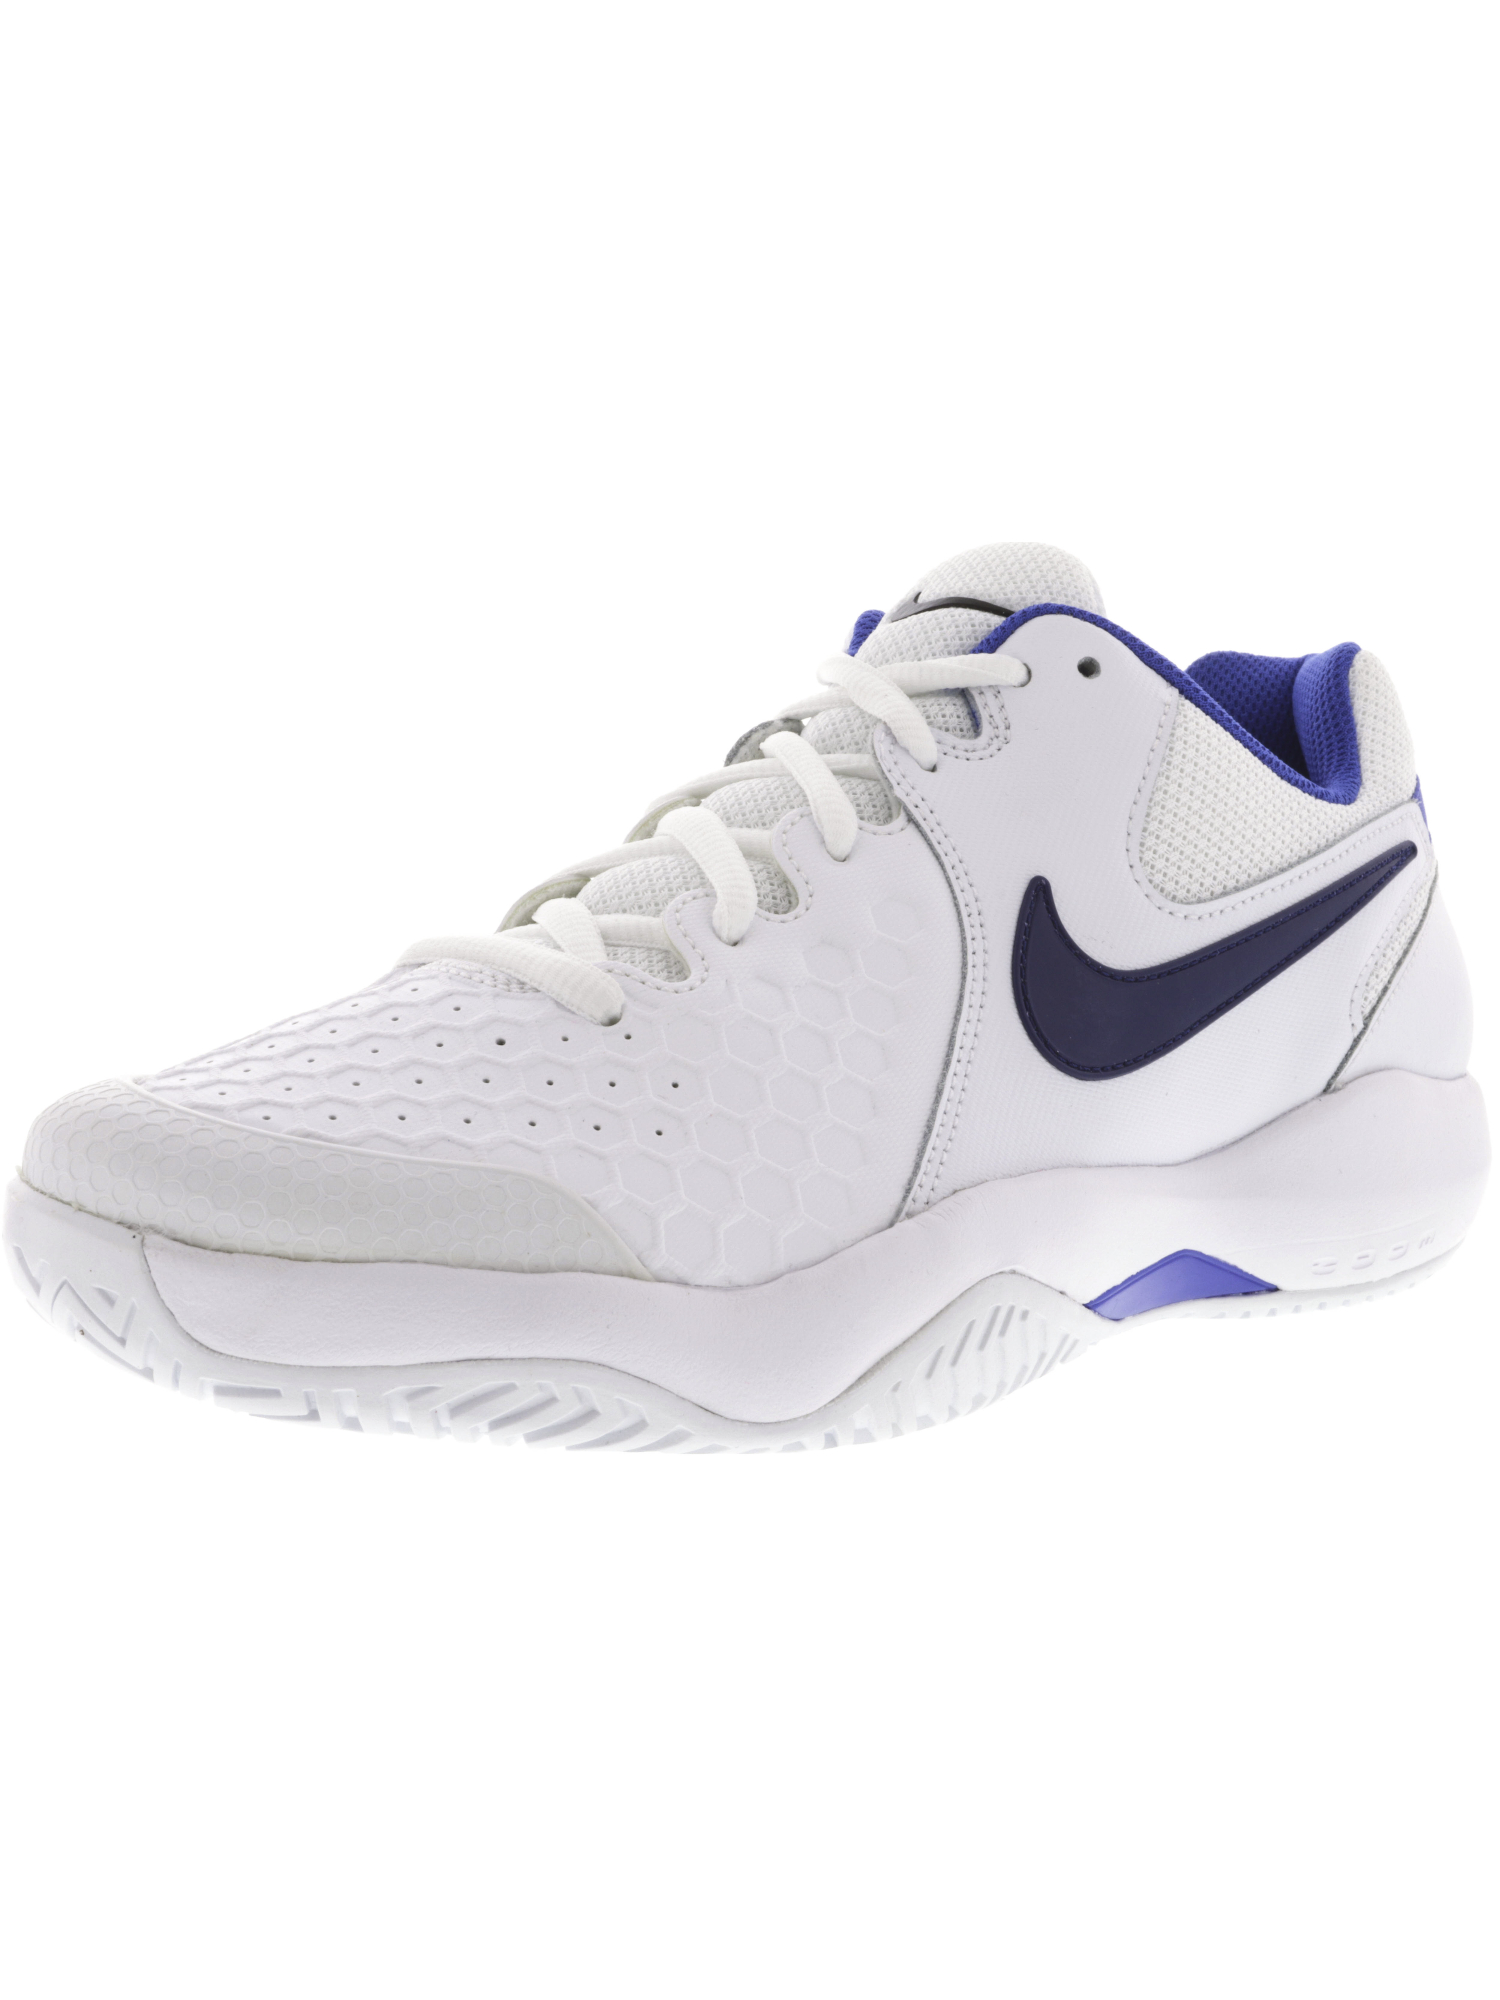 e8f85a0aacda ... Nike femmes Air Zoom Resistance Chaussure Ankle-High Running Chaussure  Resistance ca8254